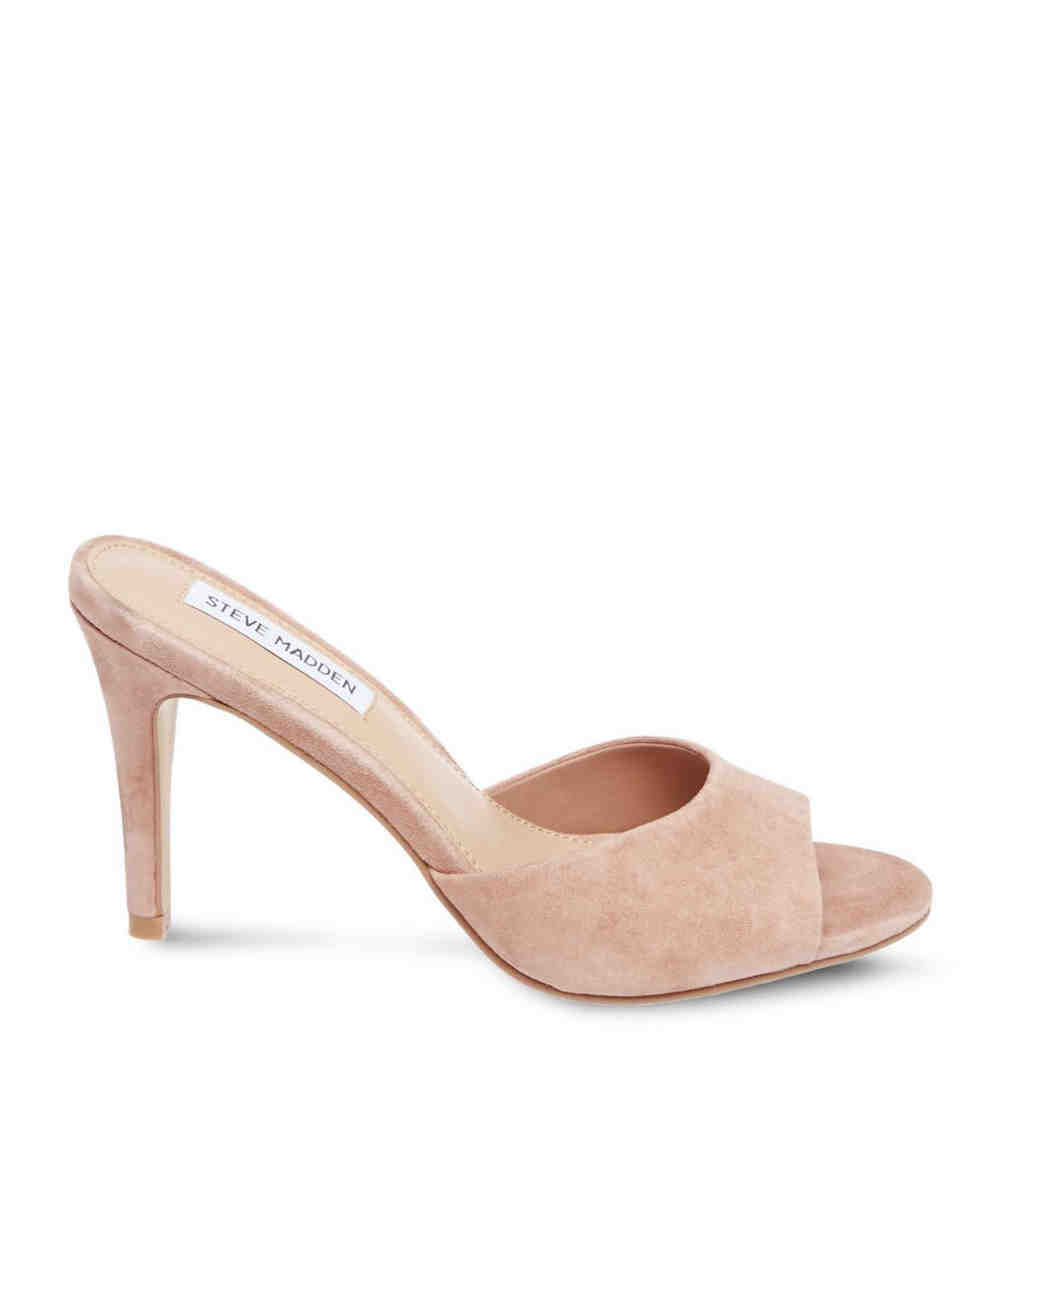 nude shoe tan suede shoes